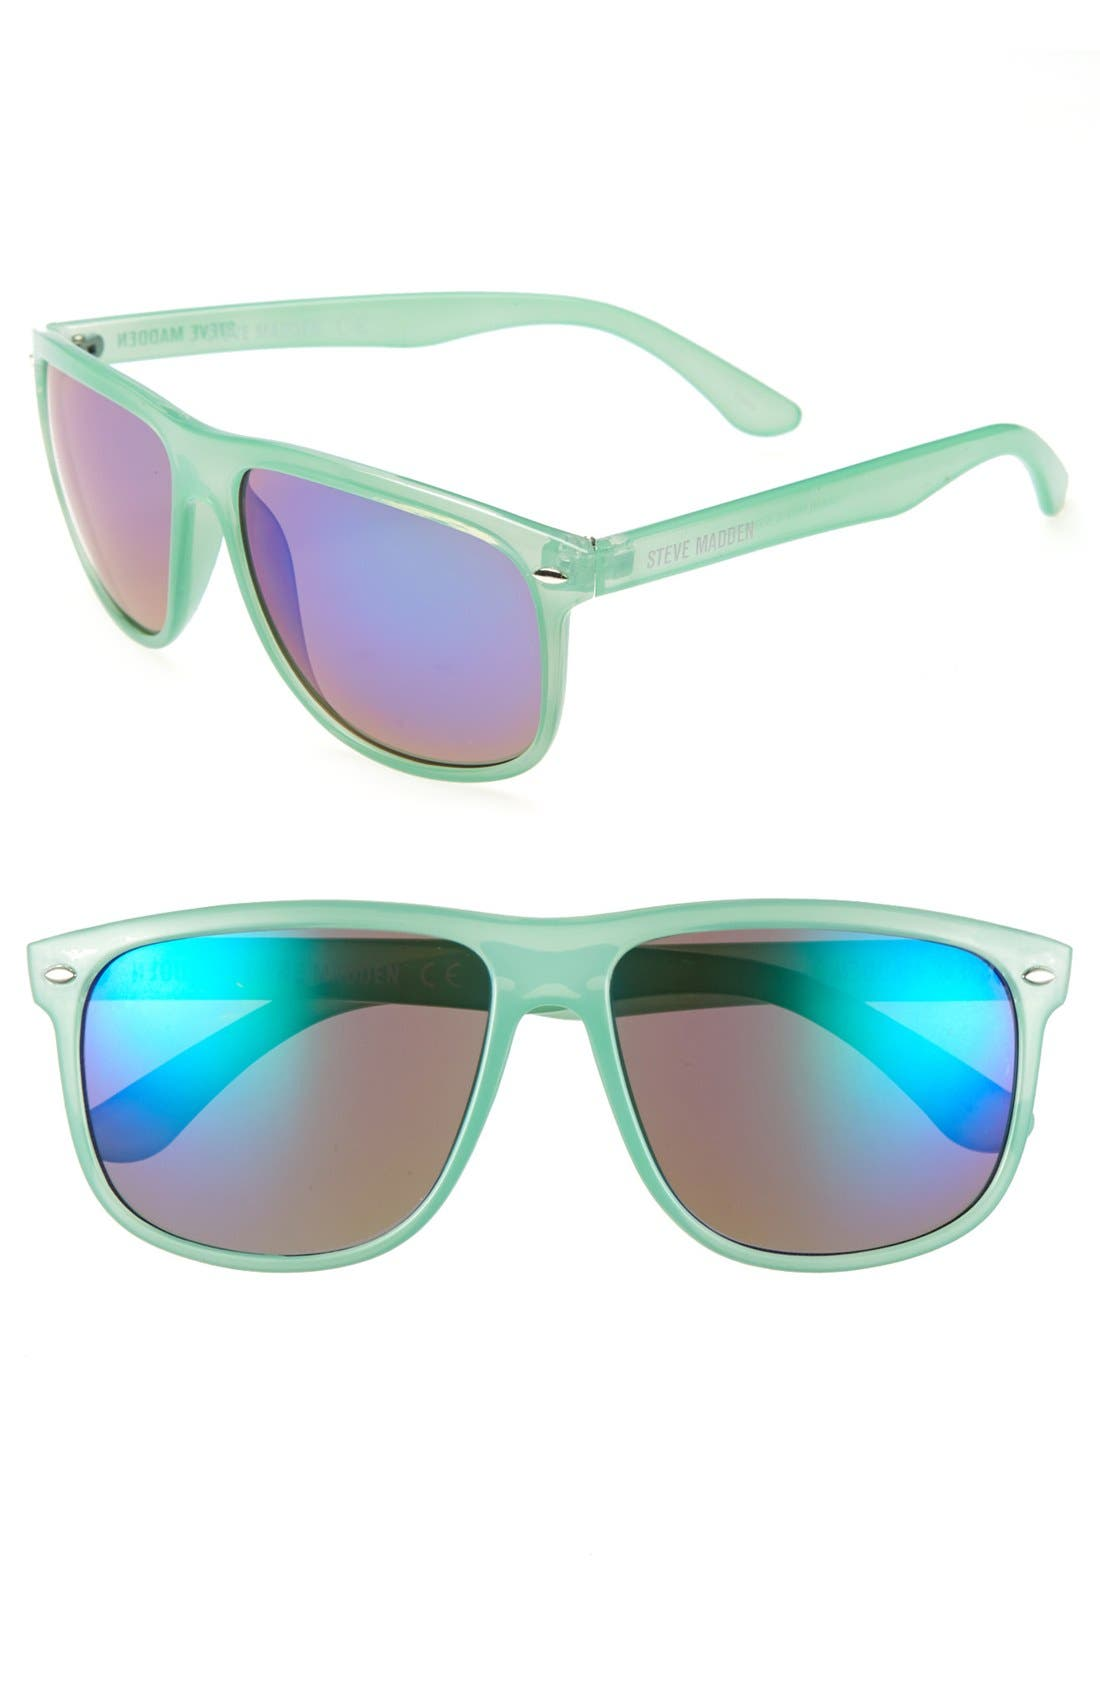 Alternate Image 1 Selected - Steve Madden Retro Sunglasses